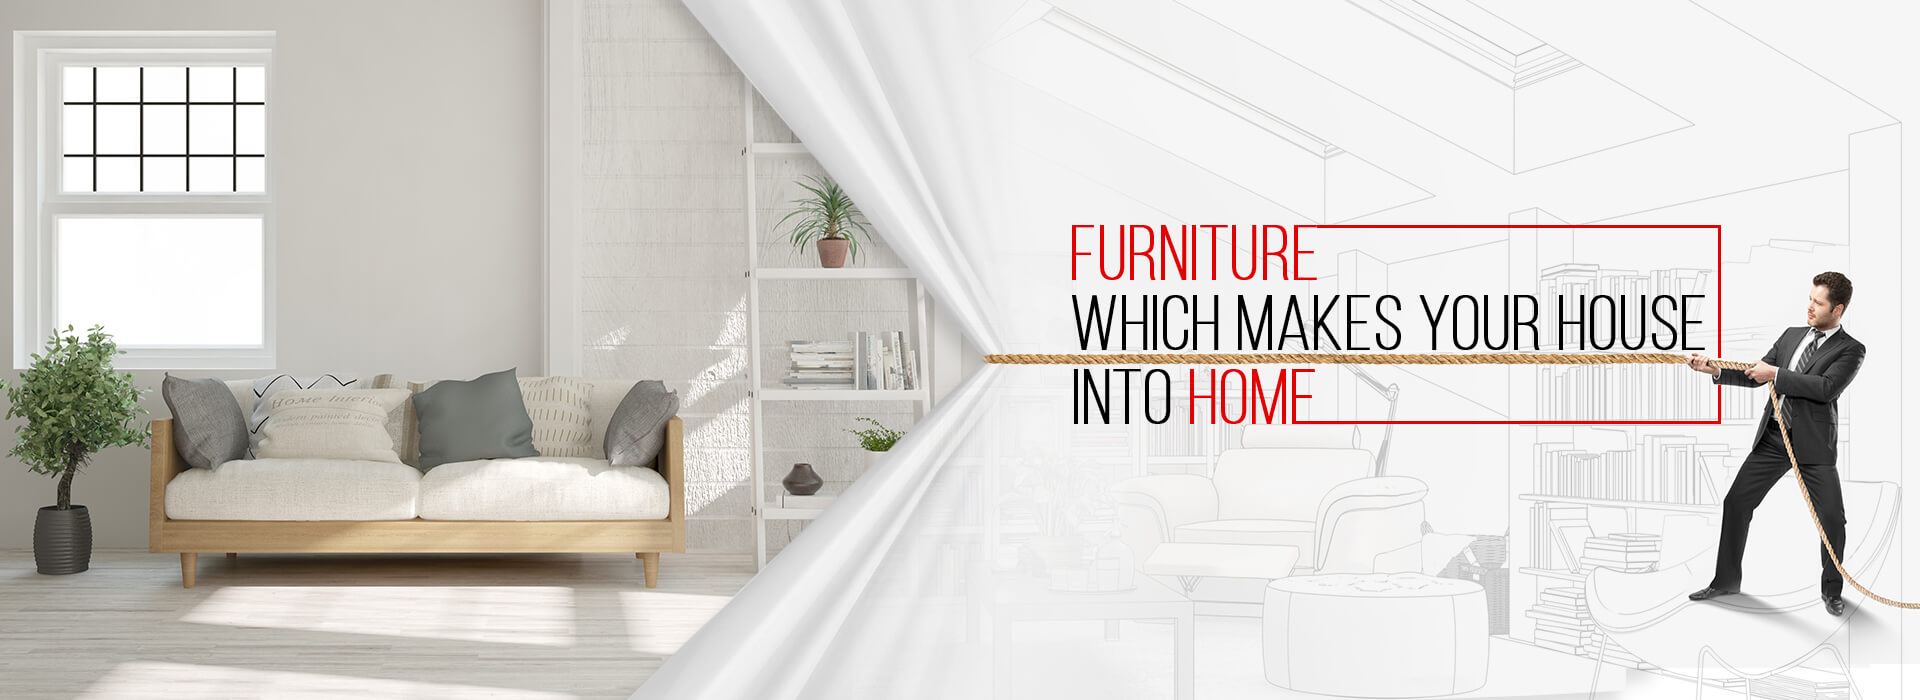 Best Furniture Shop In Hyderabad Buy Furniture Online At Anu Furniture